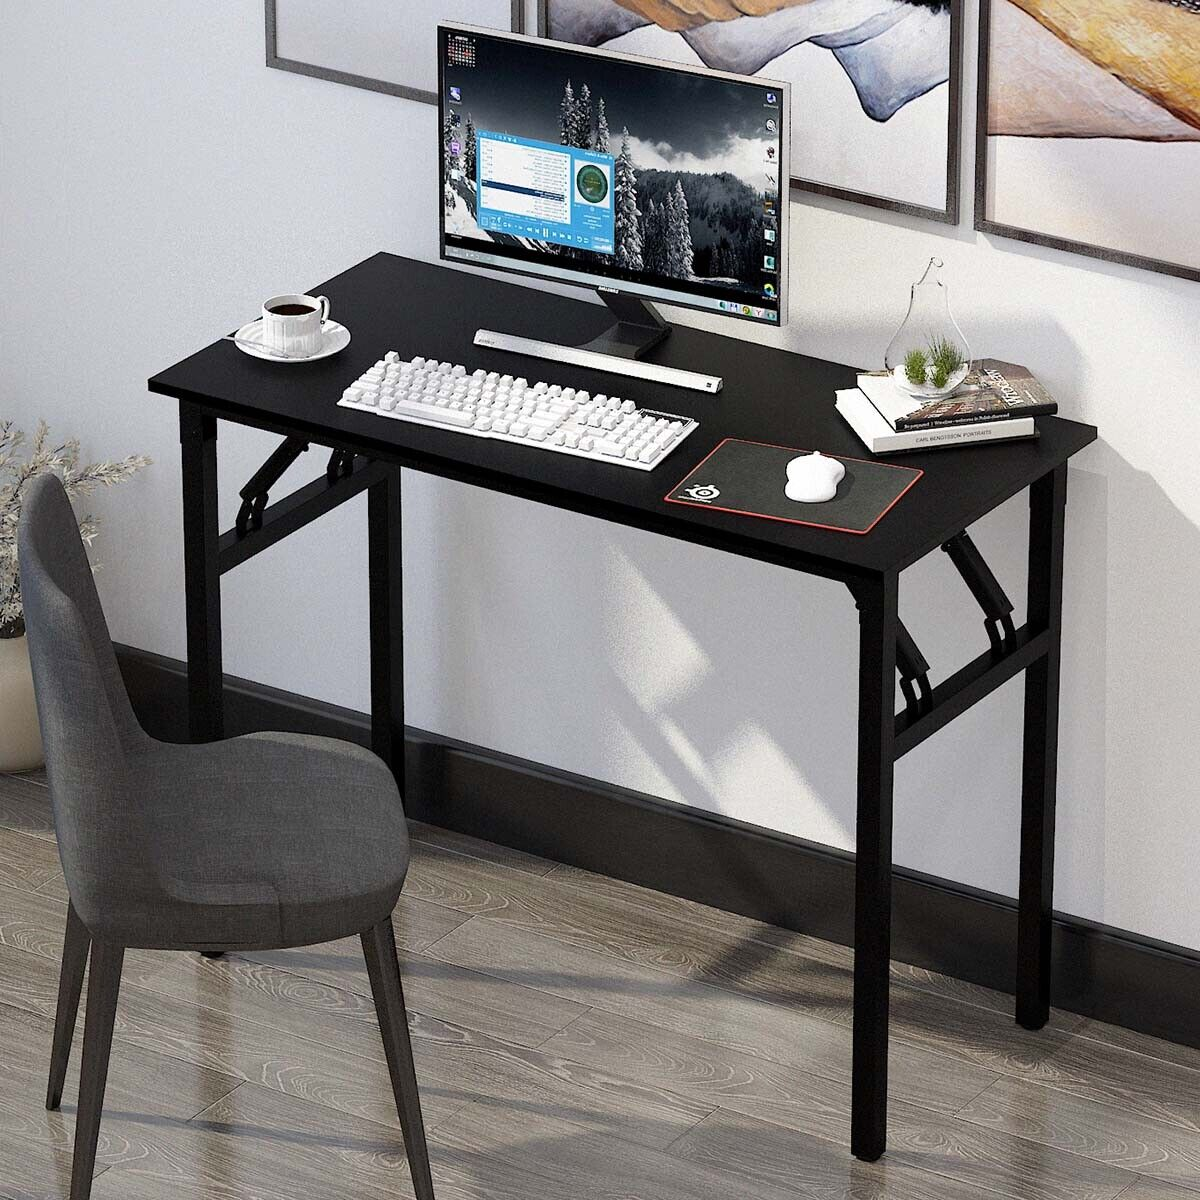 Folding Desk Table Home Office Computer Study Writing PC Laptop Tables Furniture